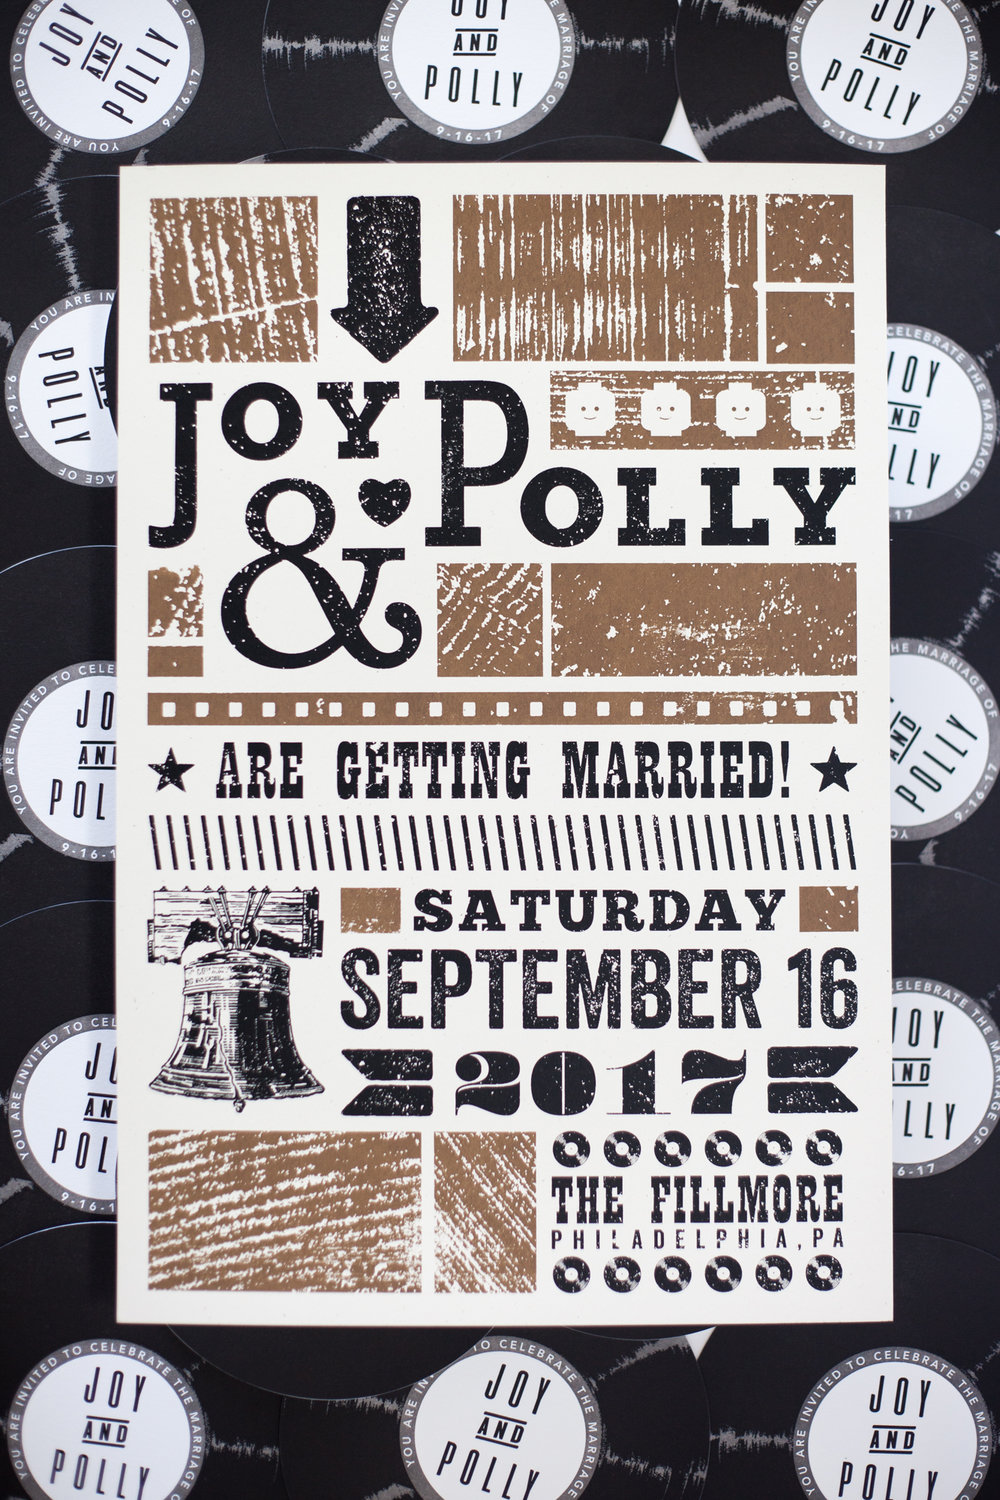 POLLY & JOY'S WEDDING POSTER, 2017.